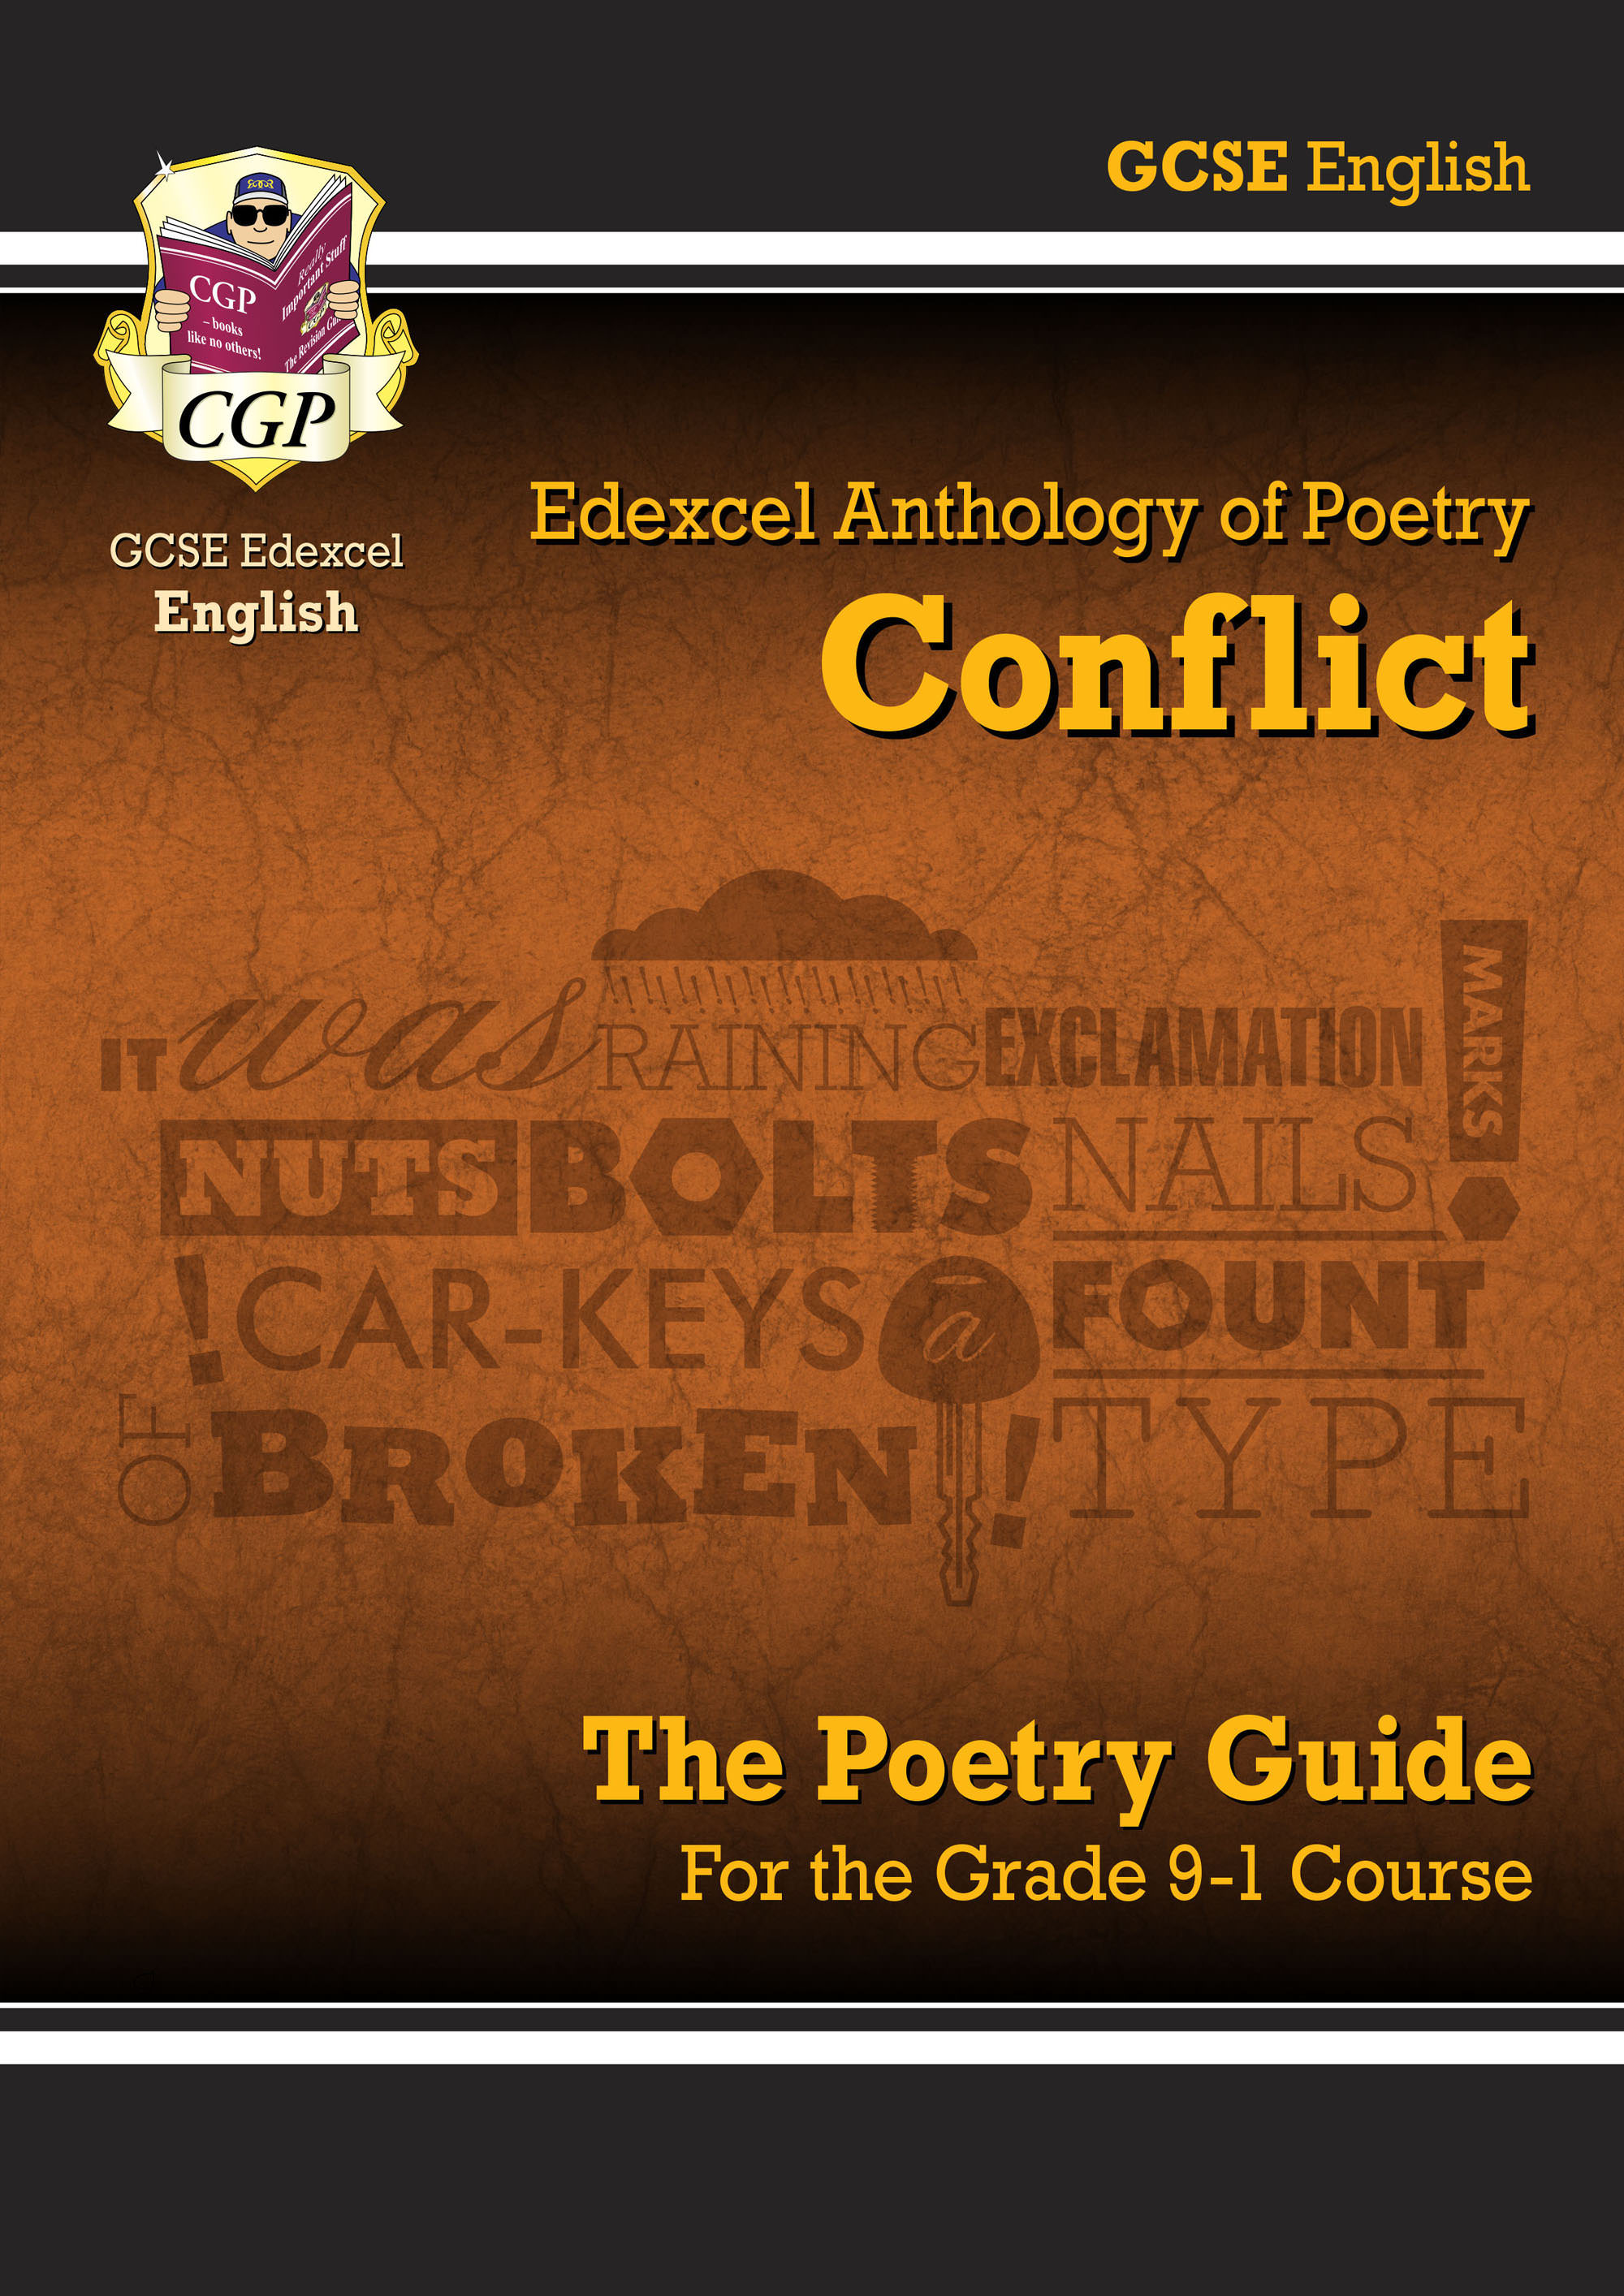 new gcse english literature edexcel poetry guide conflict anthology for the grade 9 1 course. Black Bedroom Furniture Sets. Home Design Ideas